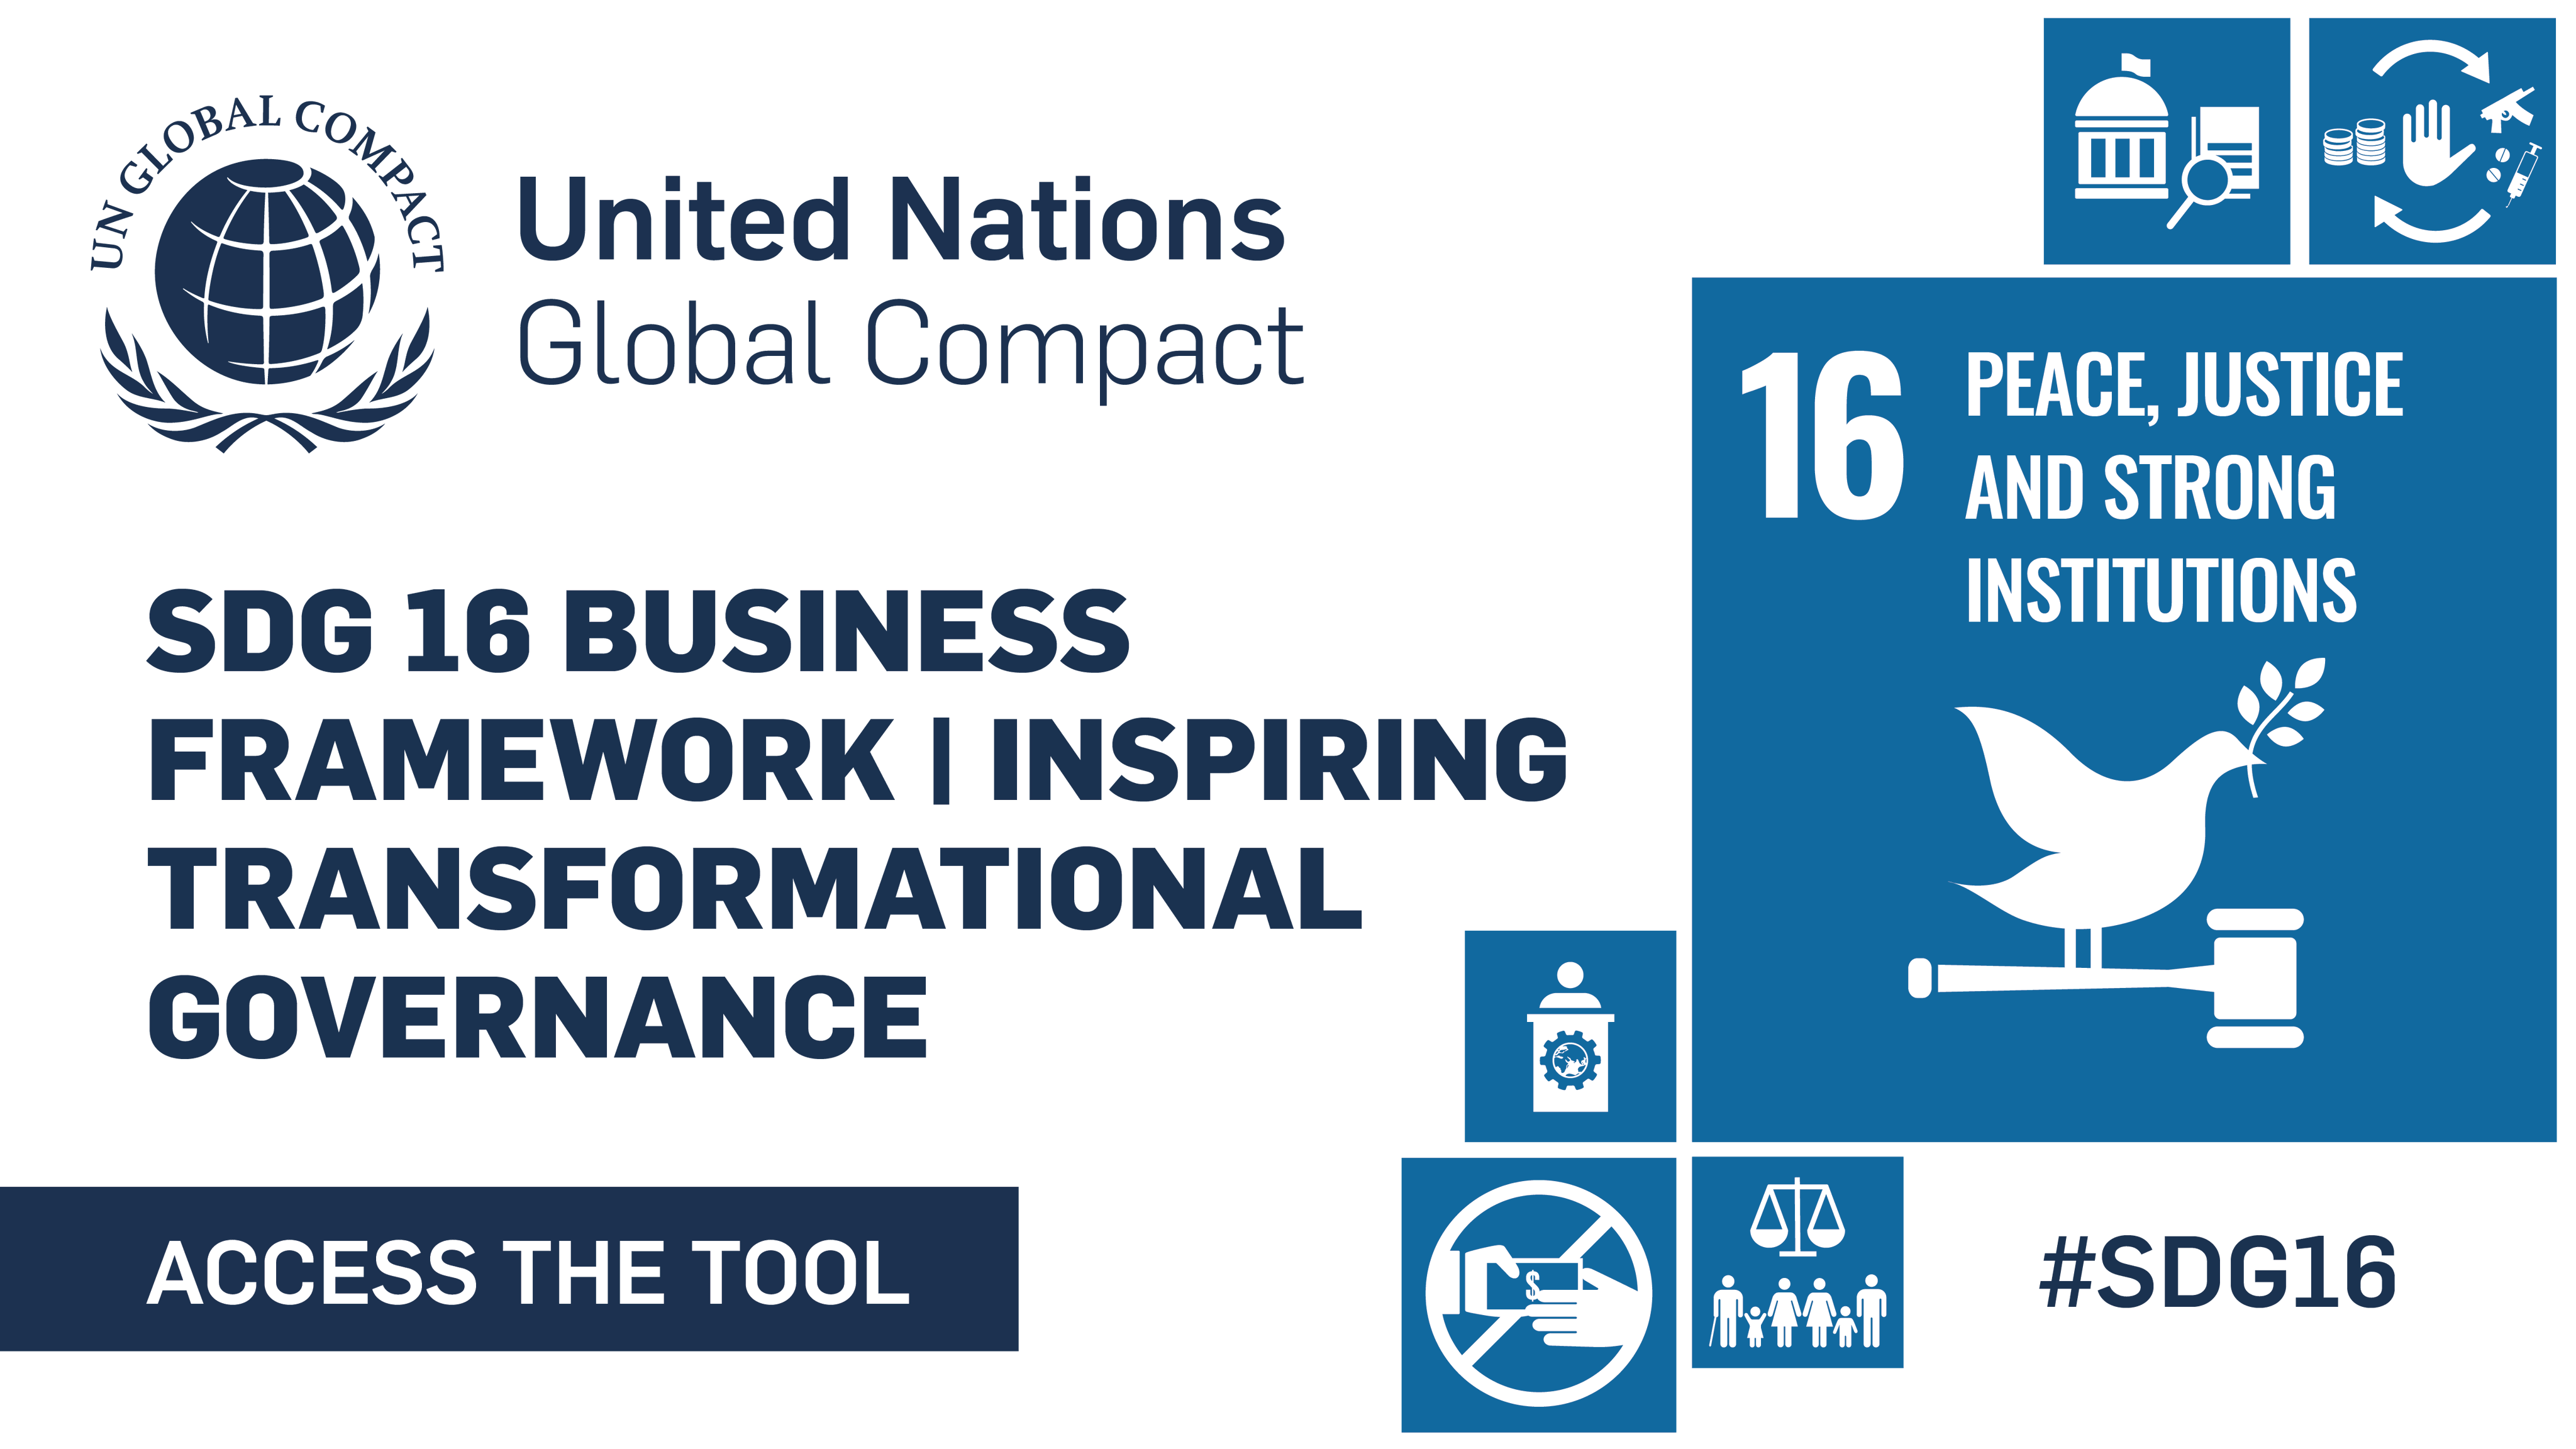 UN Global Compact Launches SDG 16 Business Framework to Inspire Transformational Governance